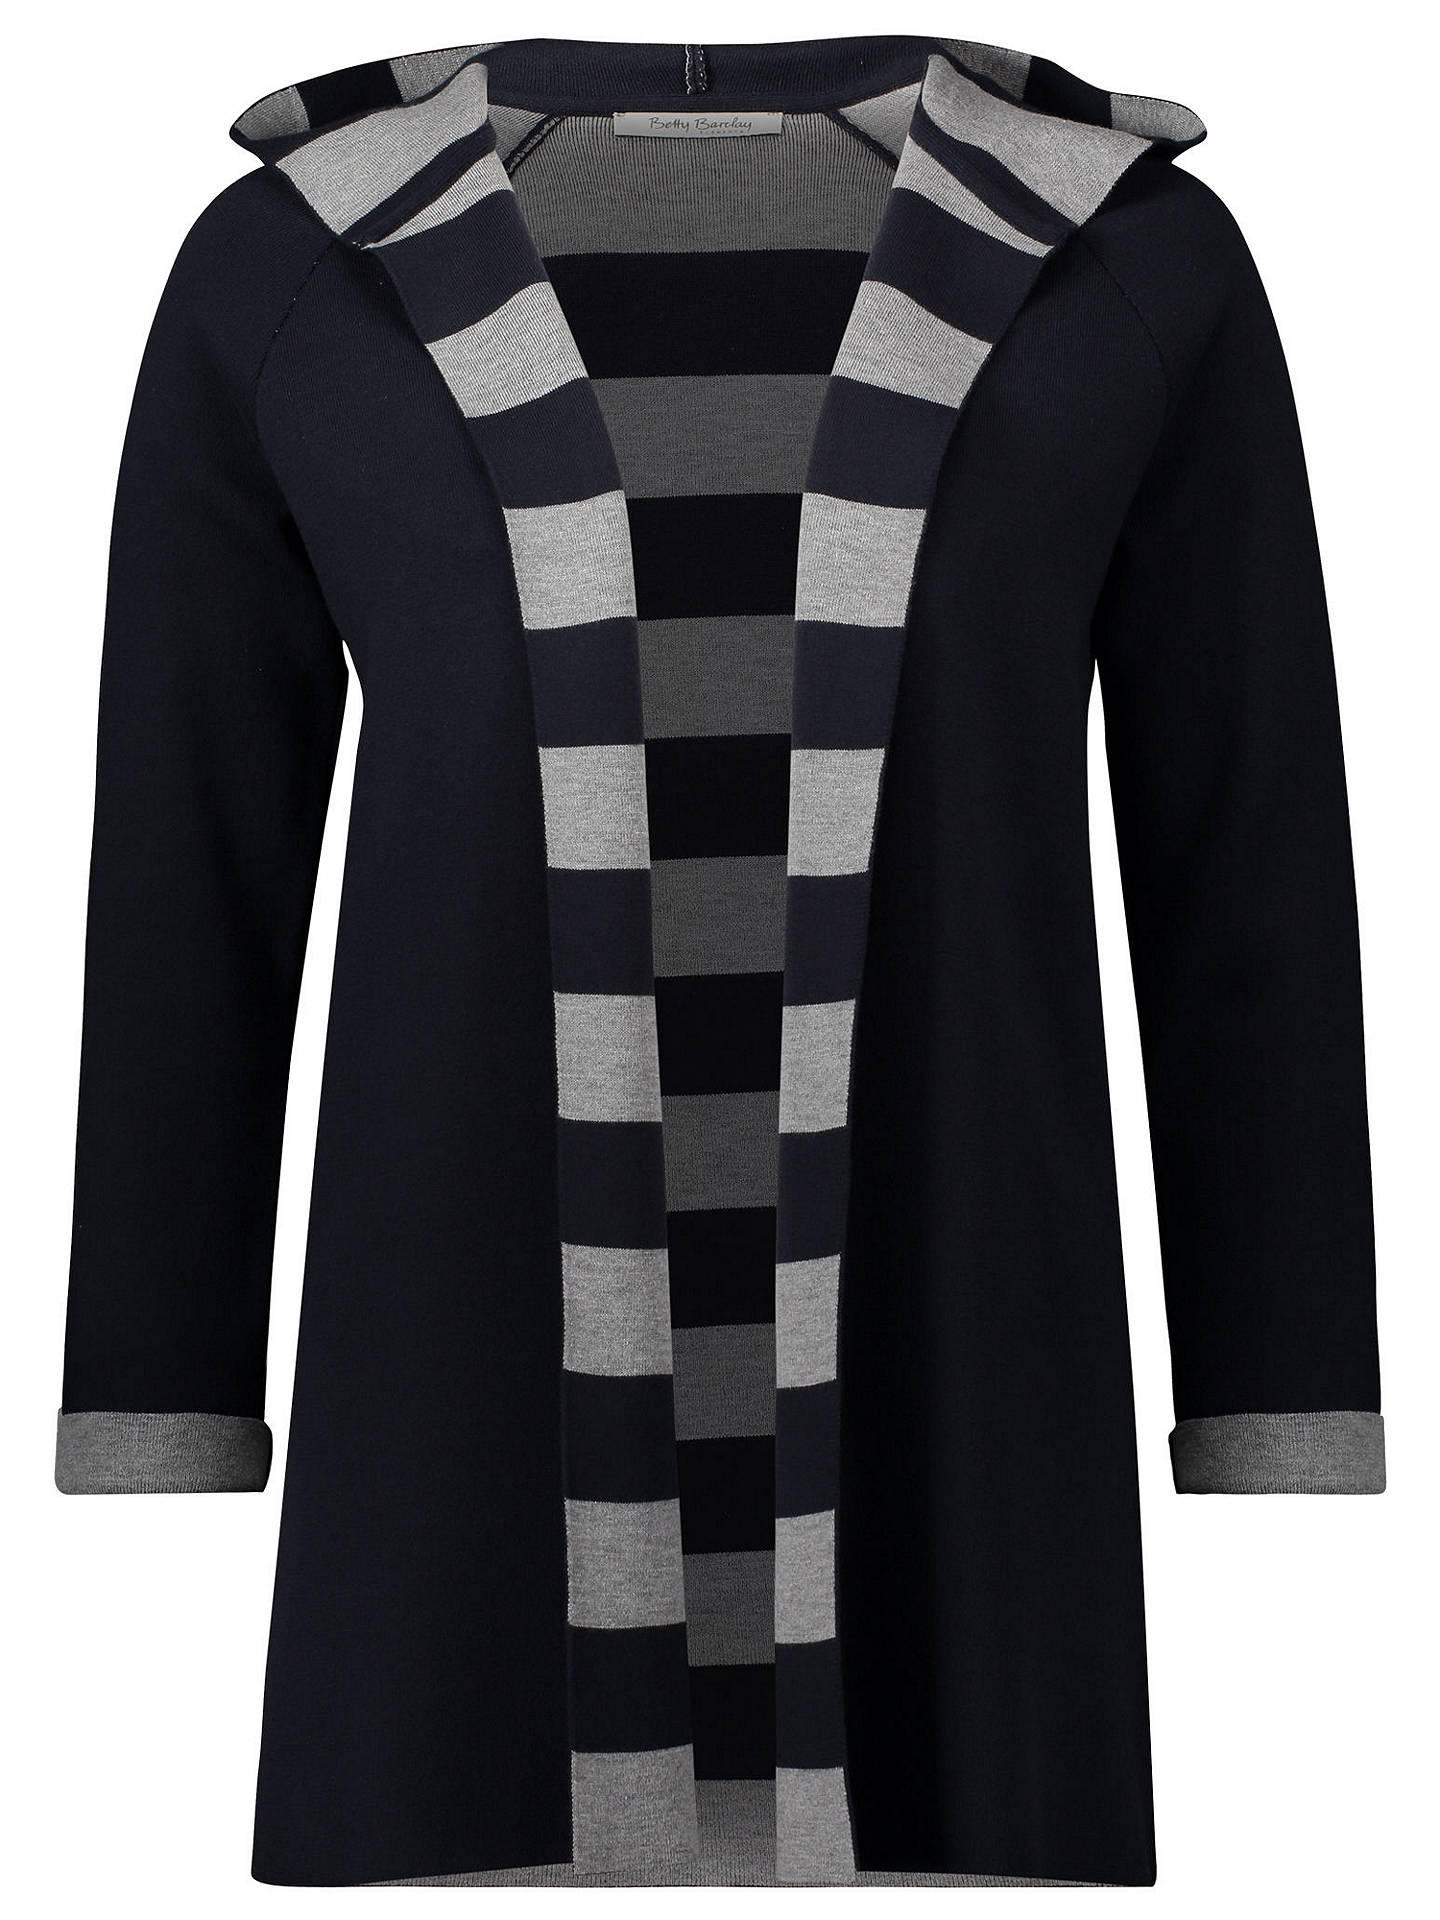 BuyBetty Barclay Double Knit Hooded Striped Cardigan, Navy, 10 Online at johnlewis.com